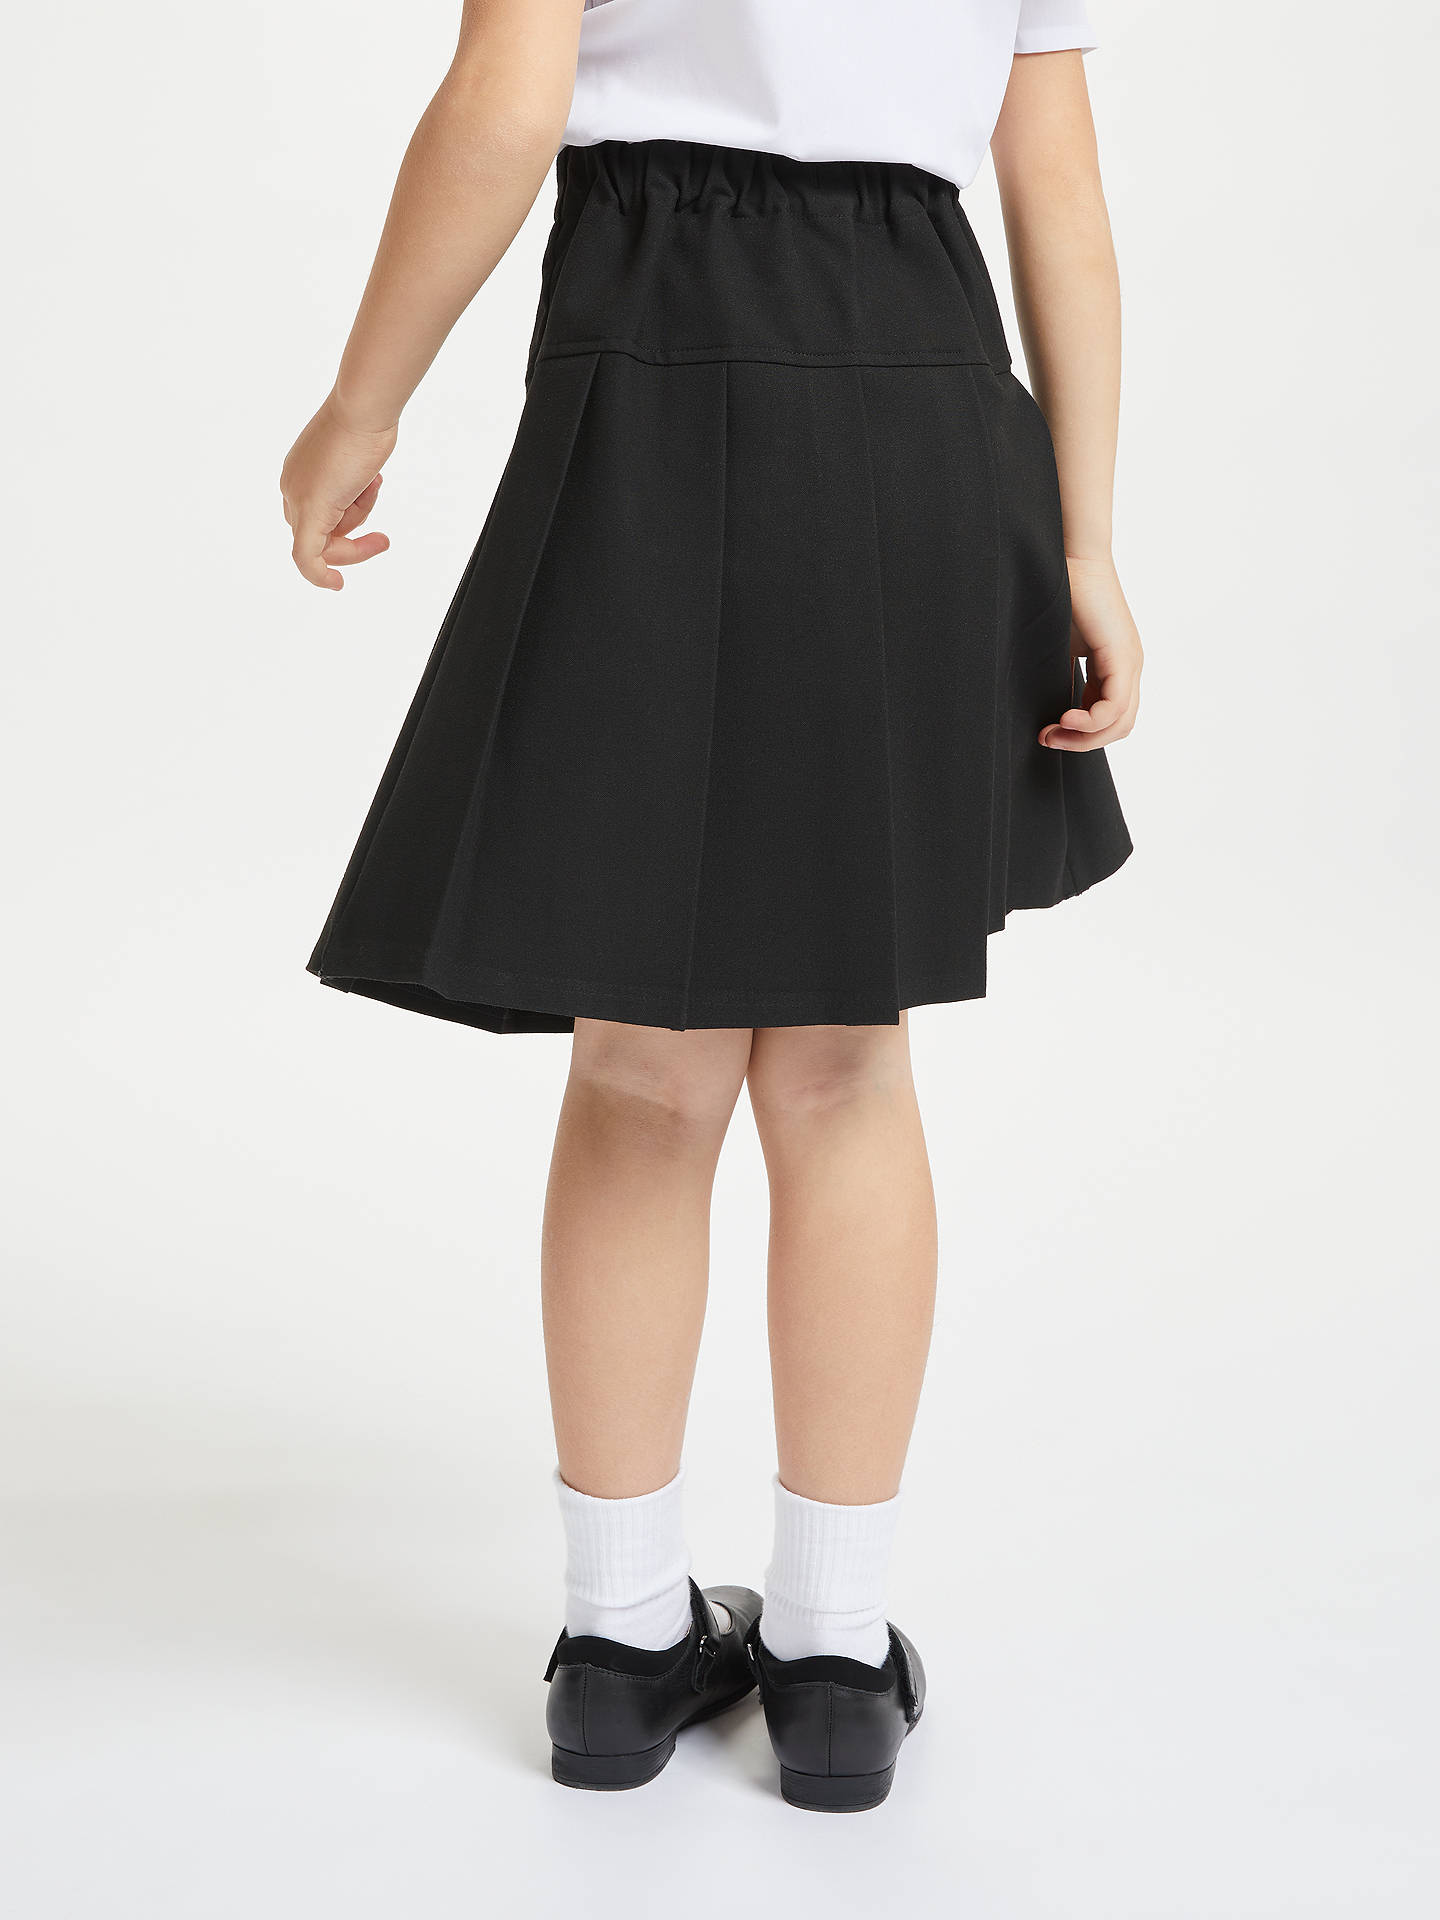 47c1335ca751 ... Buy John Lewis & Partners Girls' Panel Pleated School Skirt, Black, 4  years ...